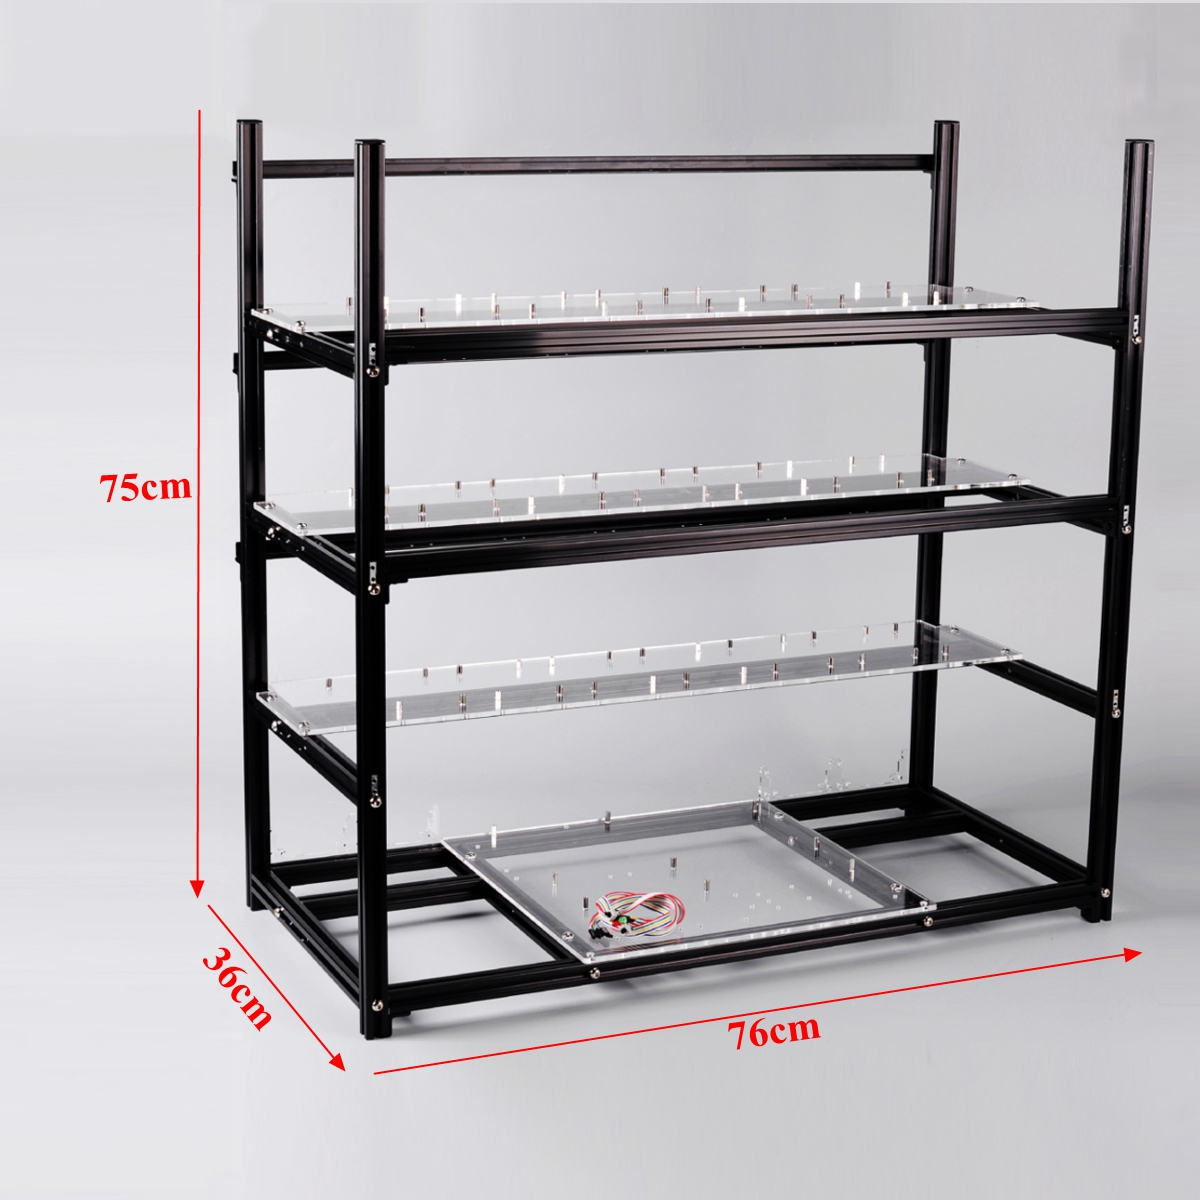 19 GPU Open Air Stackable Mining Rig Frame Miner Case For ETC BTH With 18 Cooling Fans